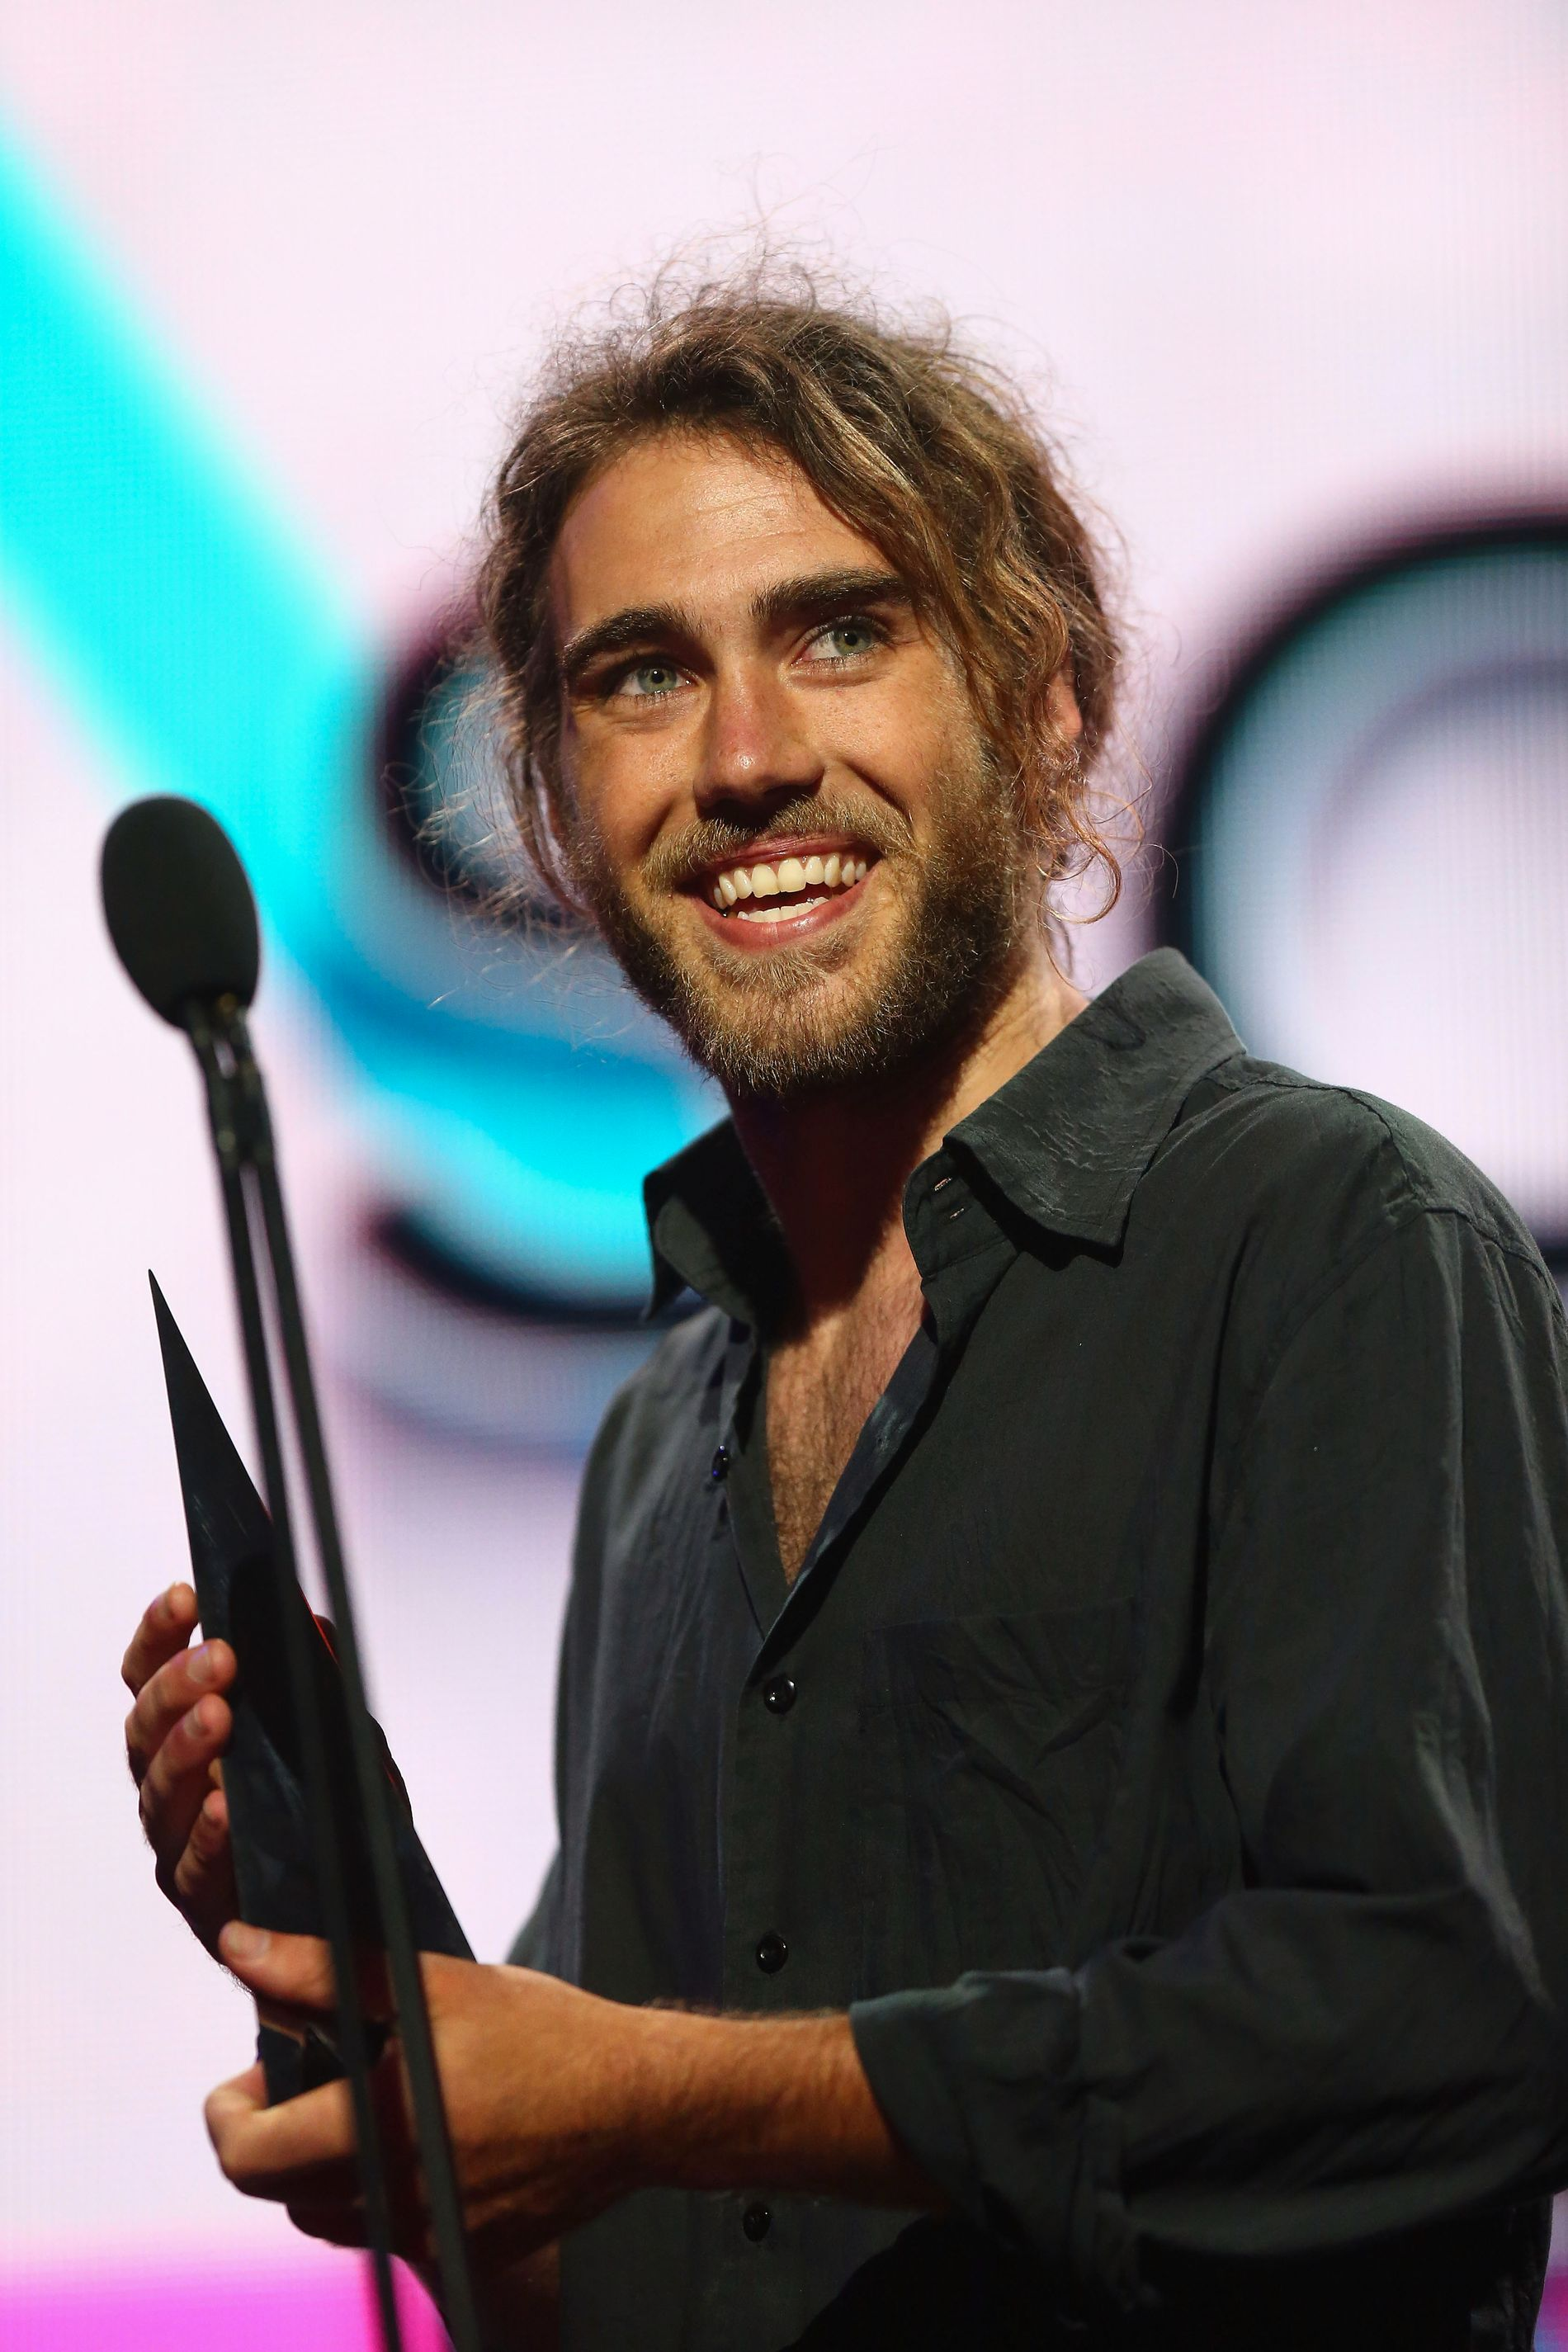 KYGO-KOMPIS: Matt Corby. Foto: GETTY